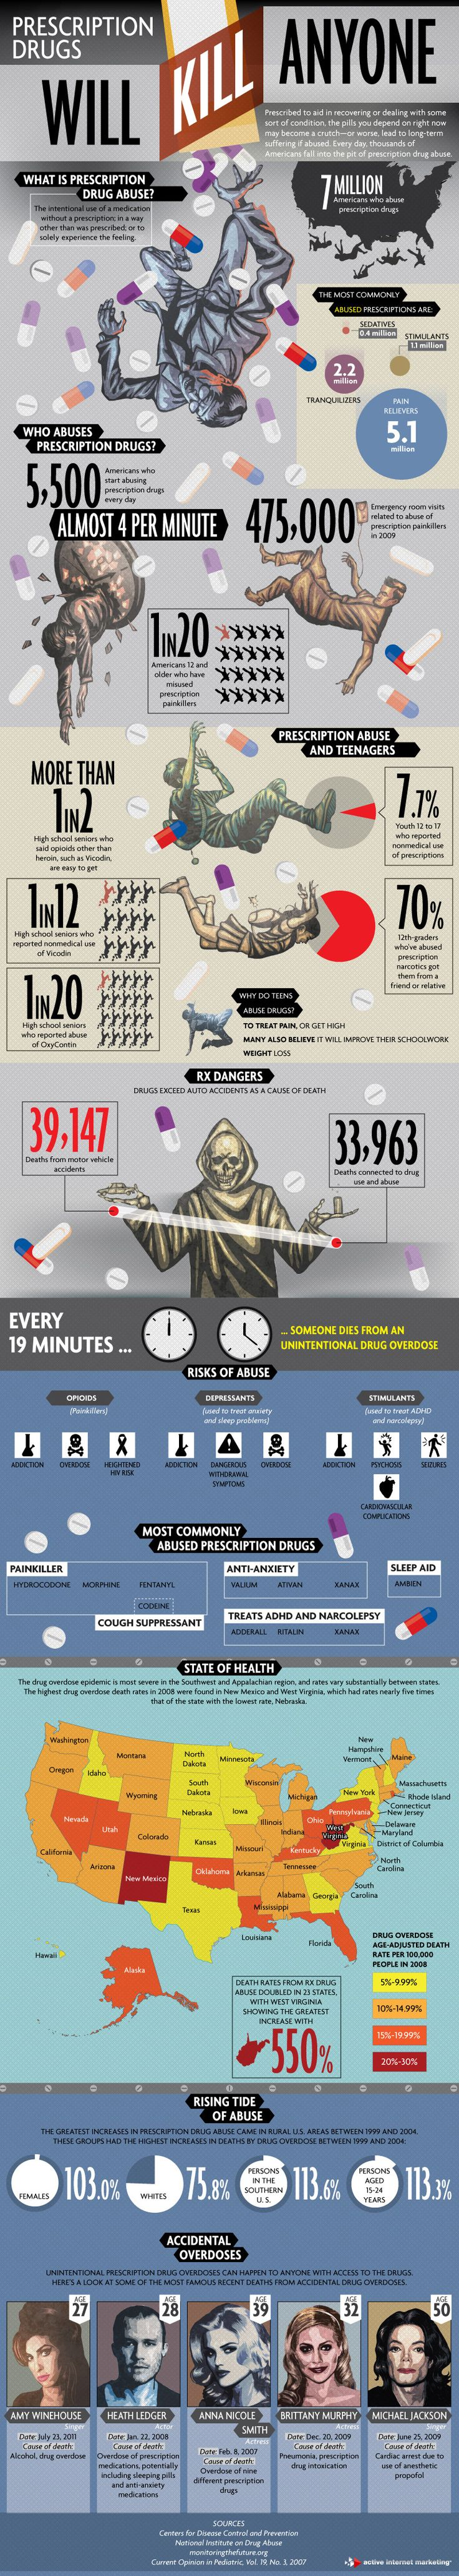 Prescription Drugs Can Kill Anyone  #prescription #drugs #research #high #SUPERHIGH